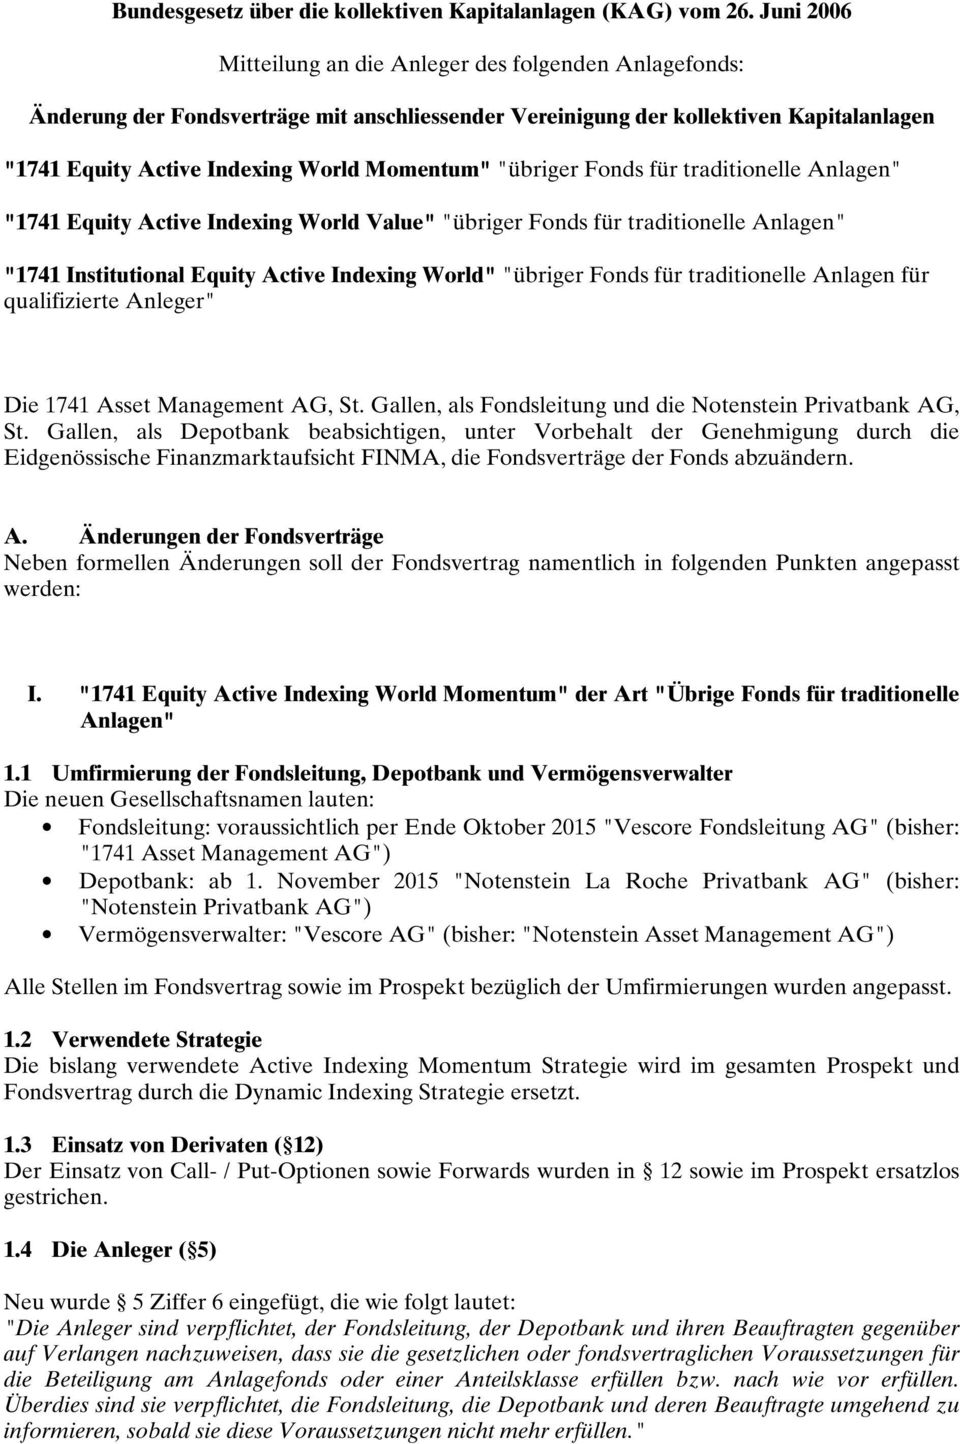 """übriger Fonds für traditionelle Anlagen"" ""1741 Equity Active Indexing World Value"" ""übriger Fonds für traditionelle Anlagen"" ""1741 Institutional Equity Active Indexing World"" ""übriger Fonds für"